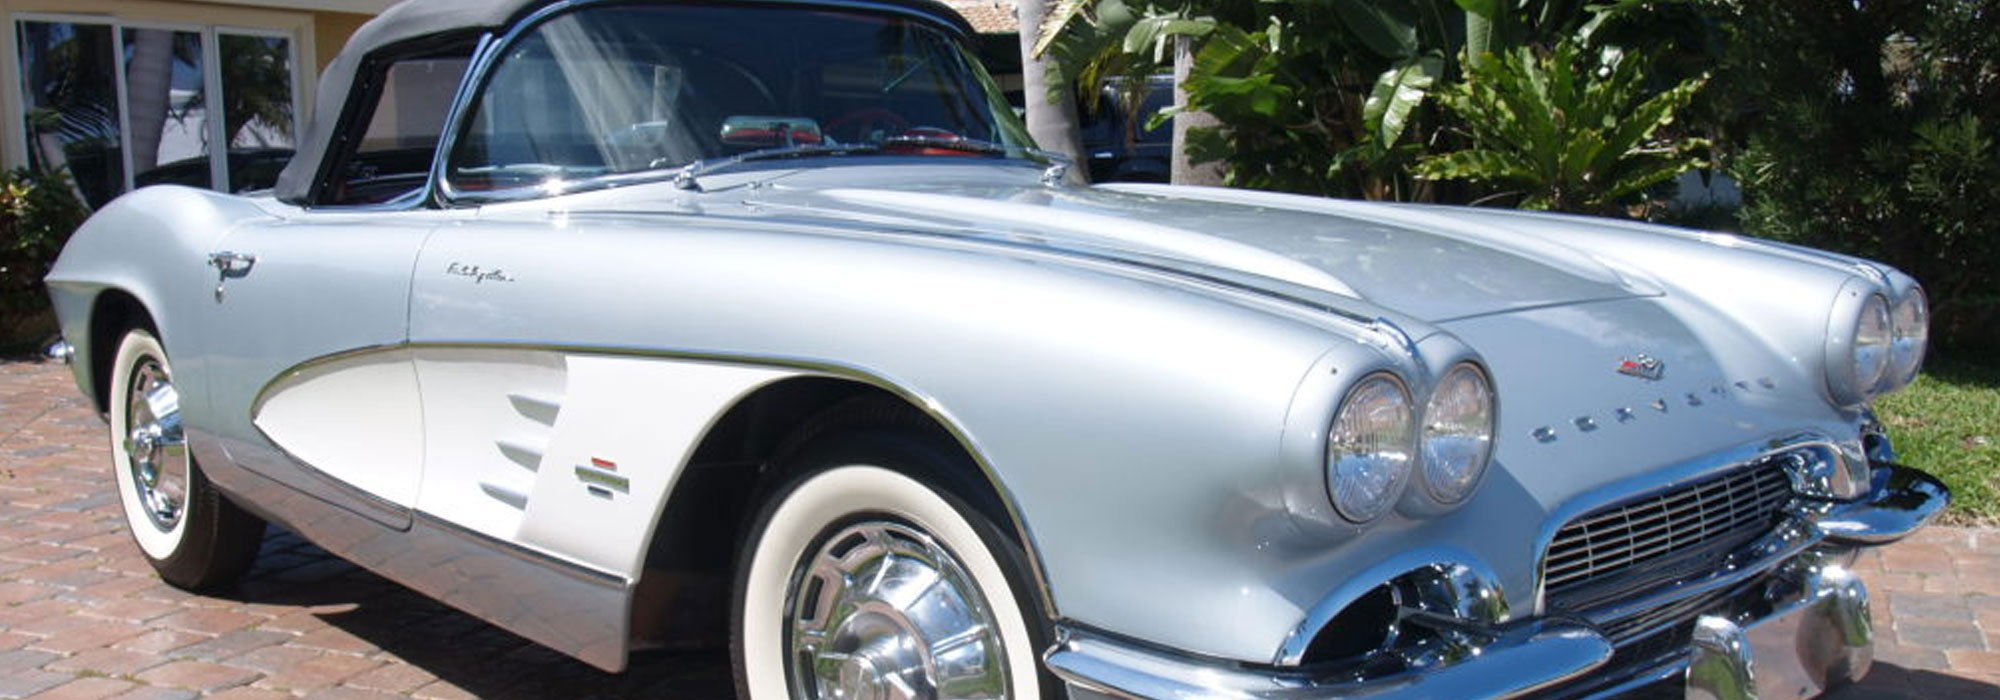 Classic Connections - Classic Cars For Sale - Greenville NC Dealer